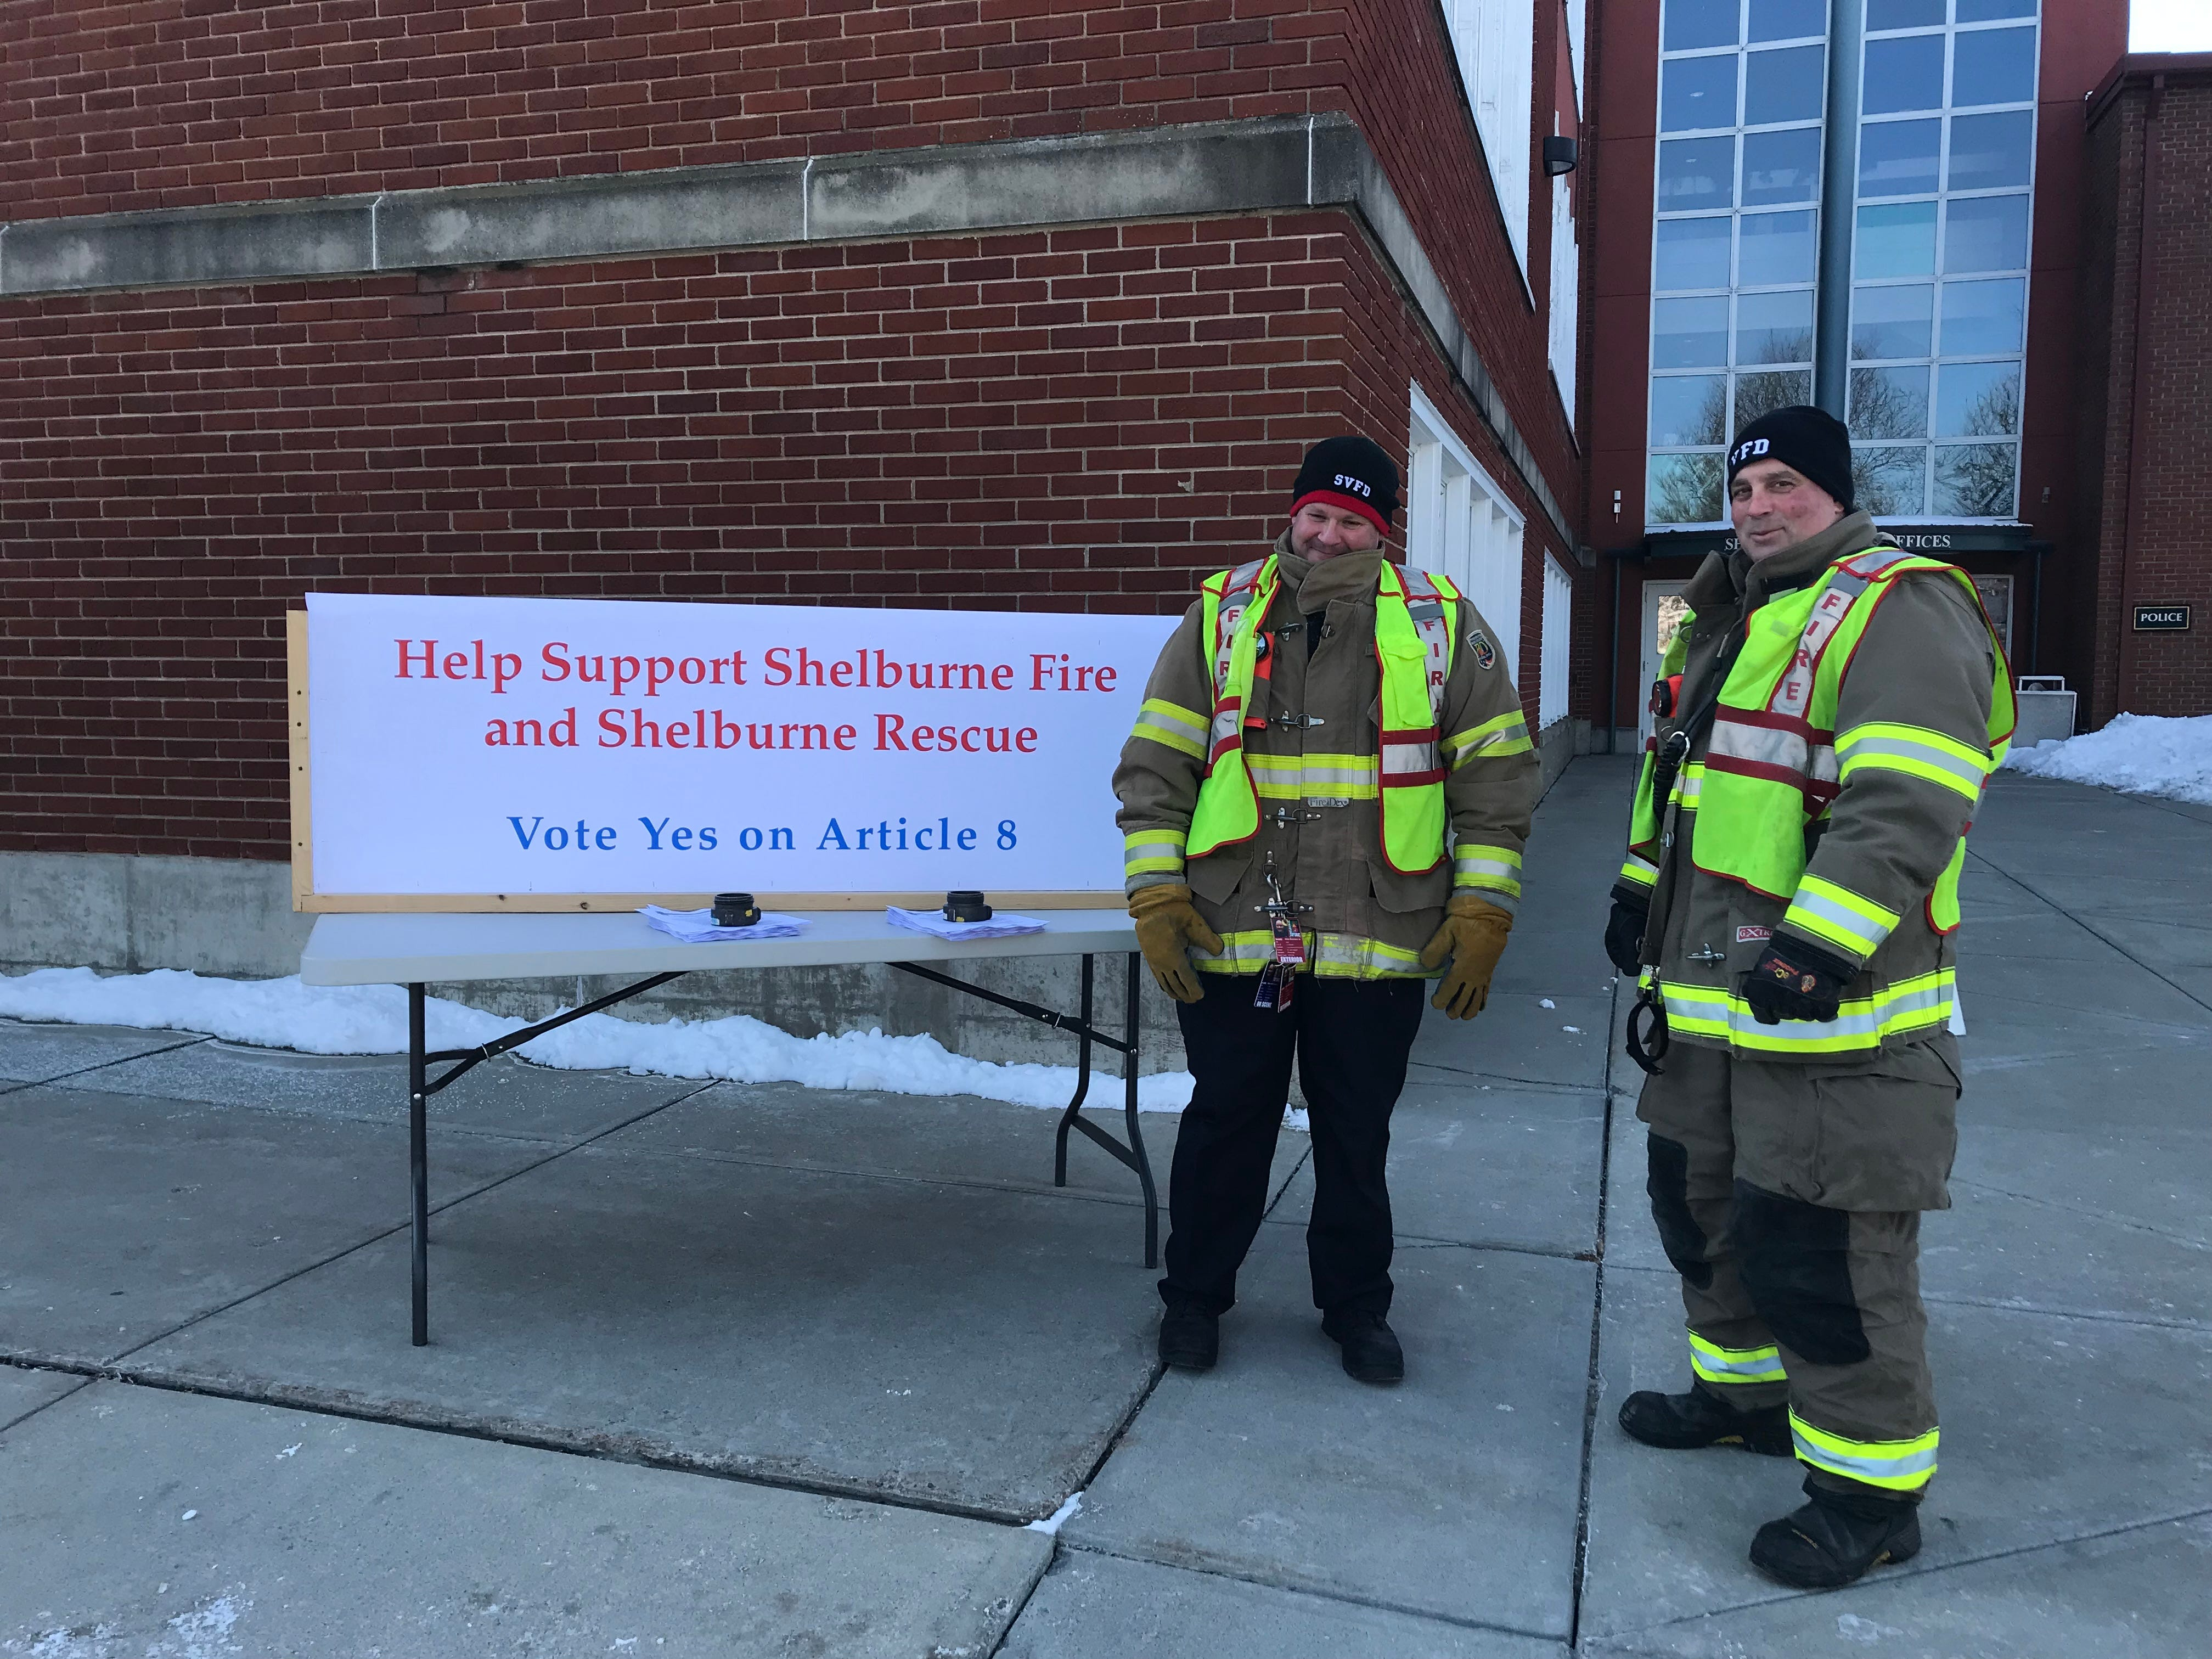 Allan Manniere and Dwight Mazur, volunteer fire fighters in Shelburne, stood on March 5, 2019, in freezing temperatures at the beginning of Town Meeting Day in Shelburne hoping to inform voters about Article 8, which asks the town to set aside funds which would allow for the possible purchase of land for a fire house on U.S. 7.